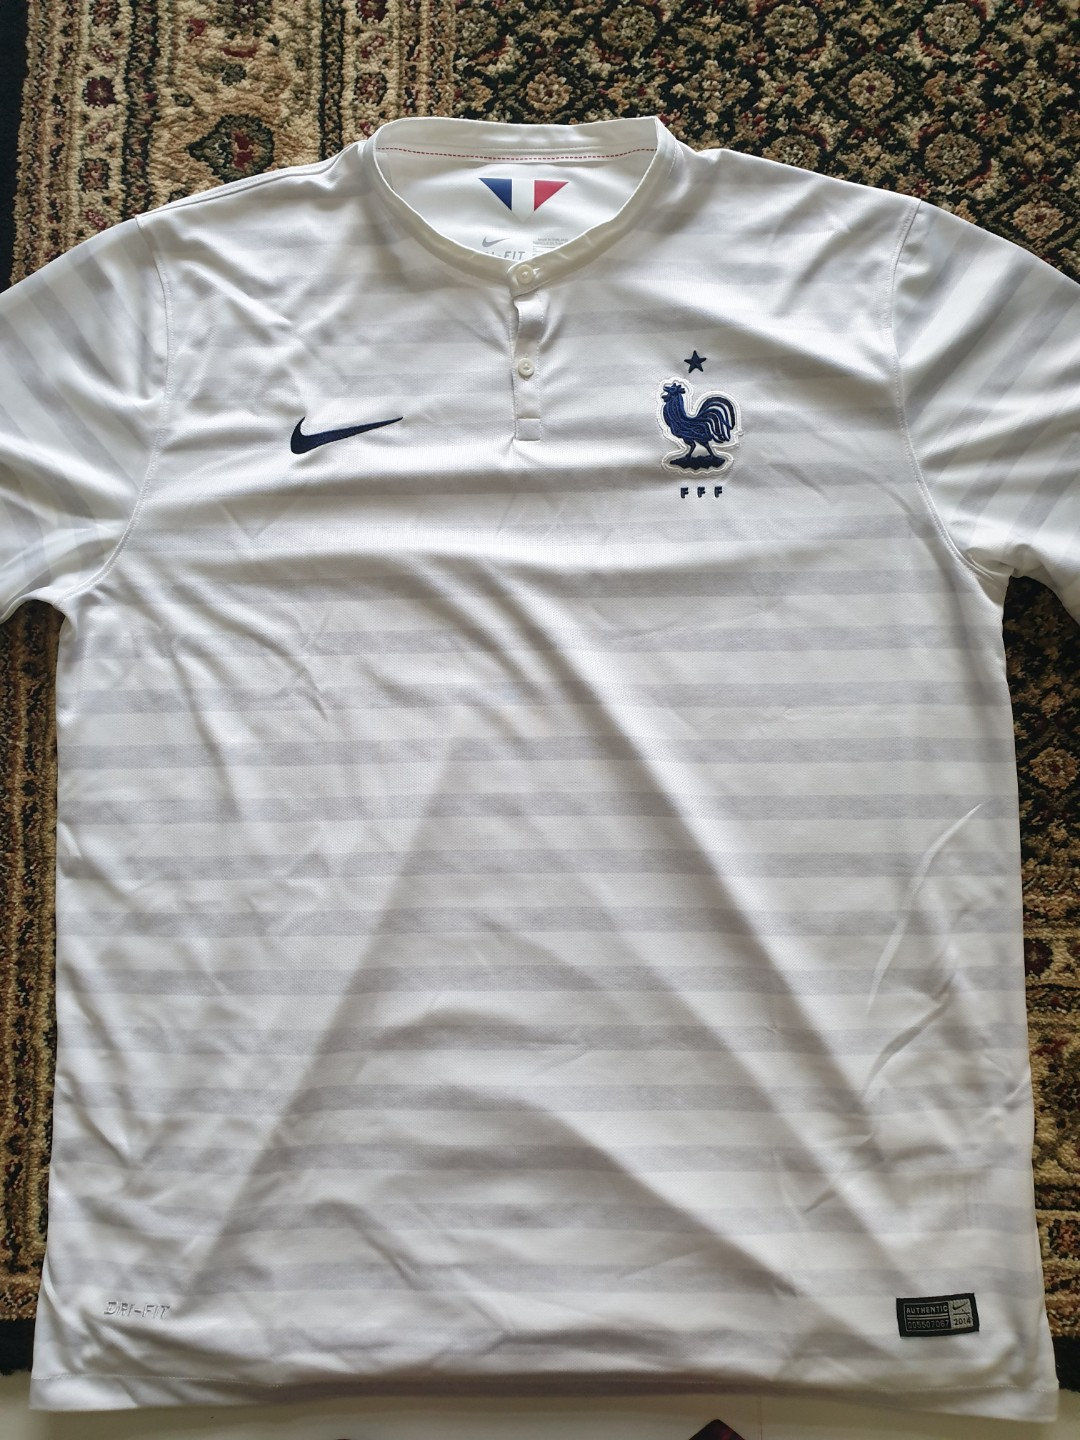 on sale 07255 8841e Authentic Nike World Cup 2014 France Away Jersey XL, Sports ...